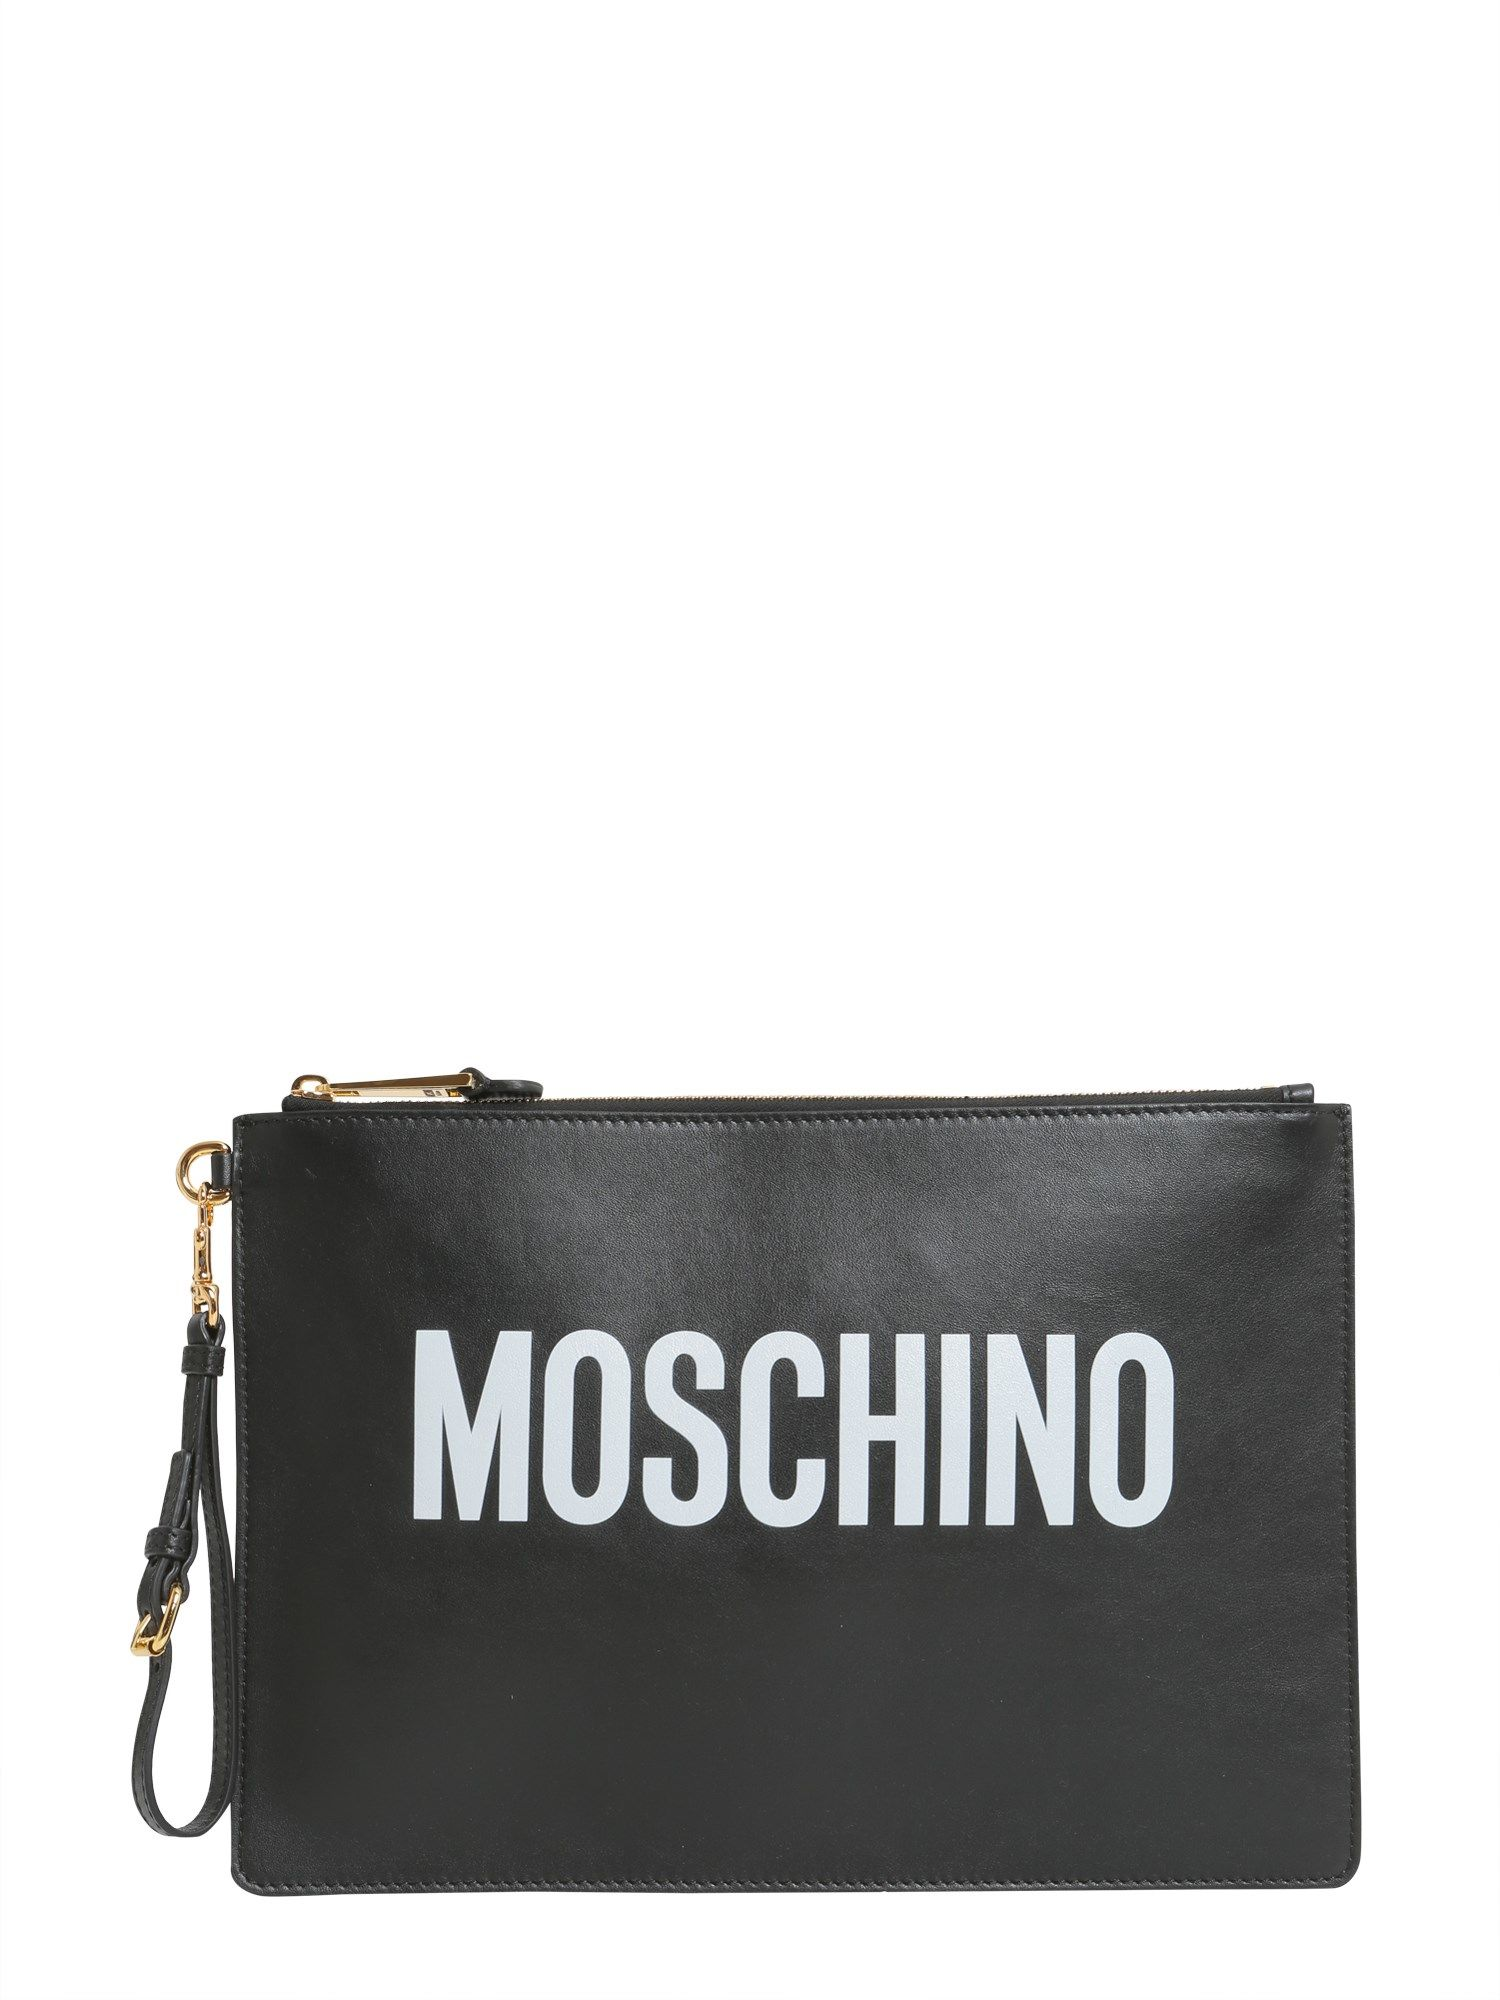 Moschino Printed Large Pouch